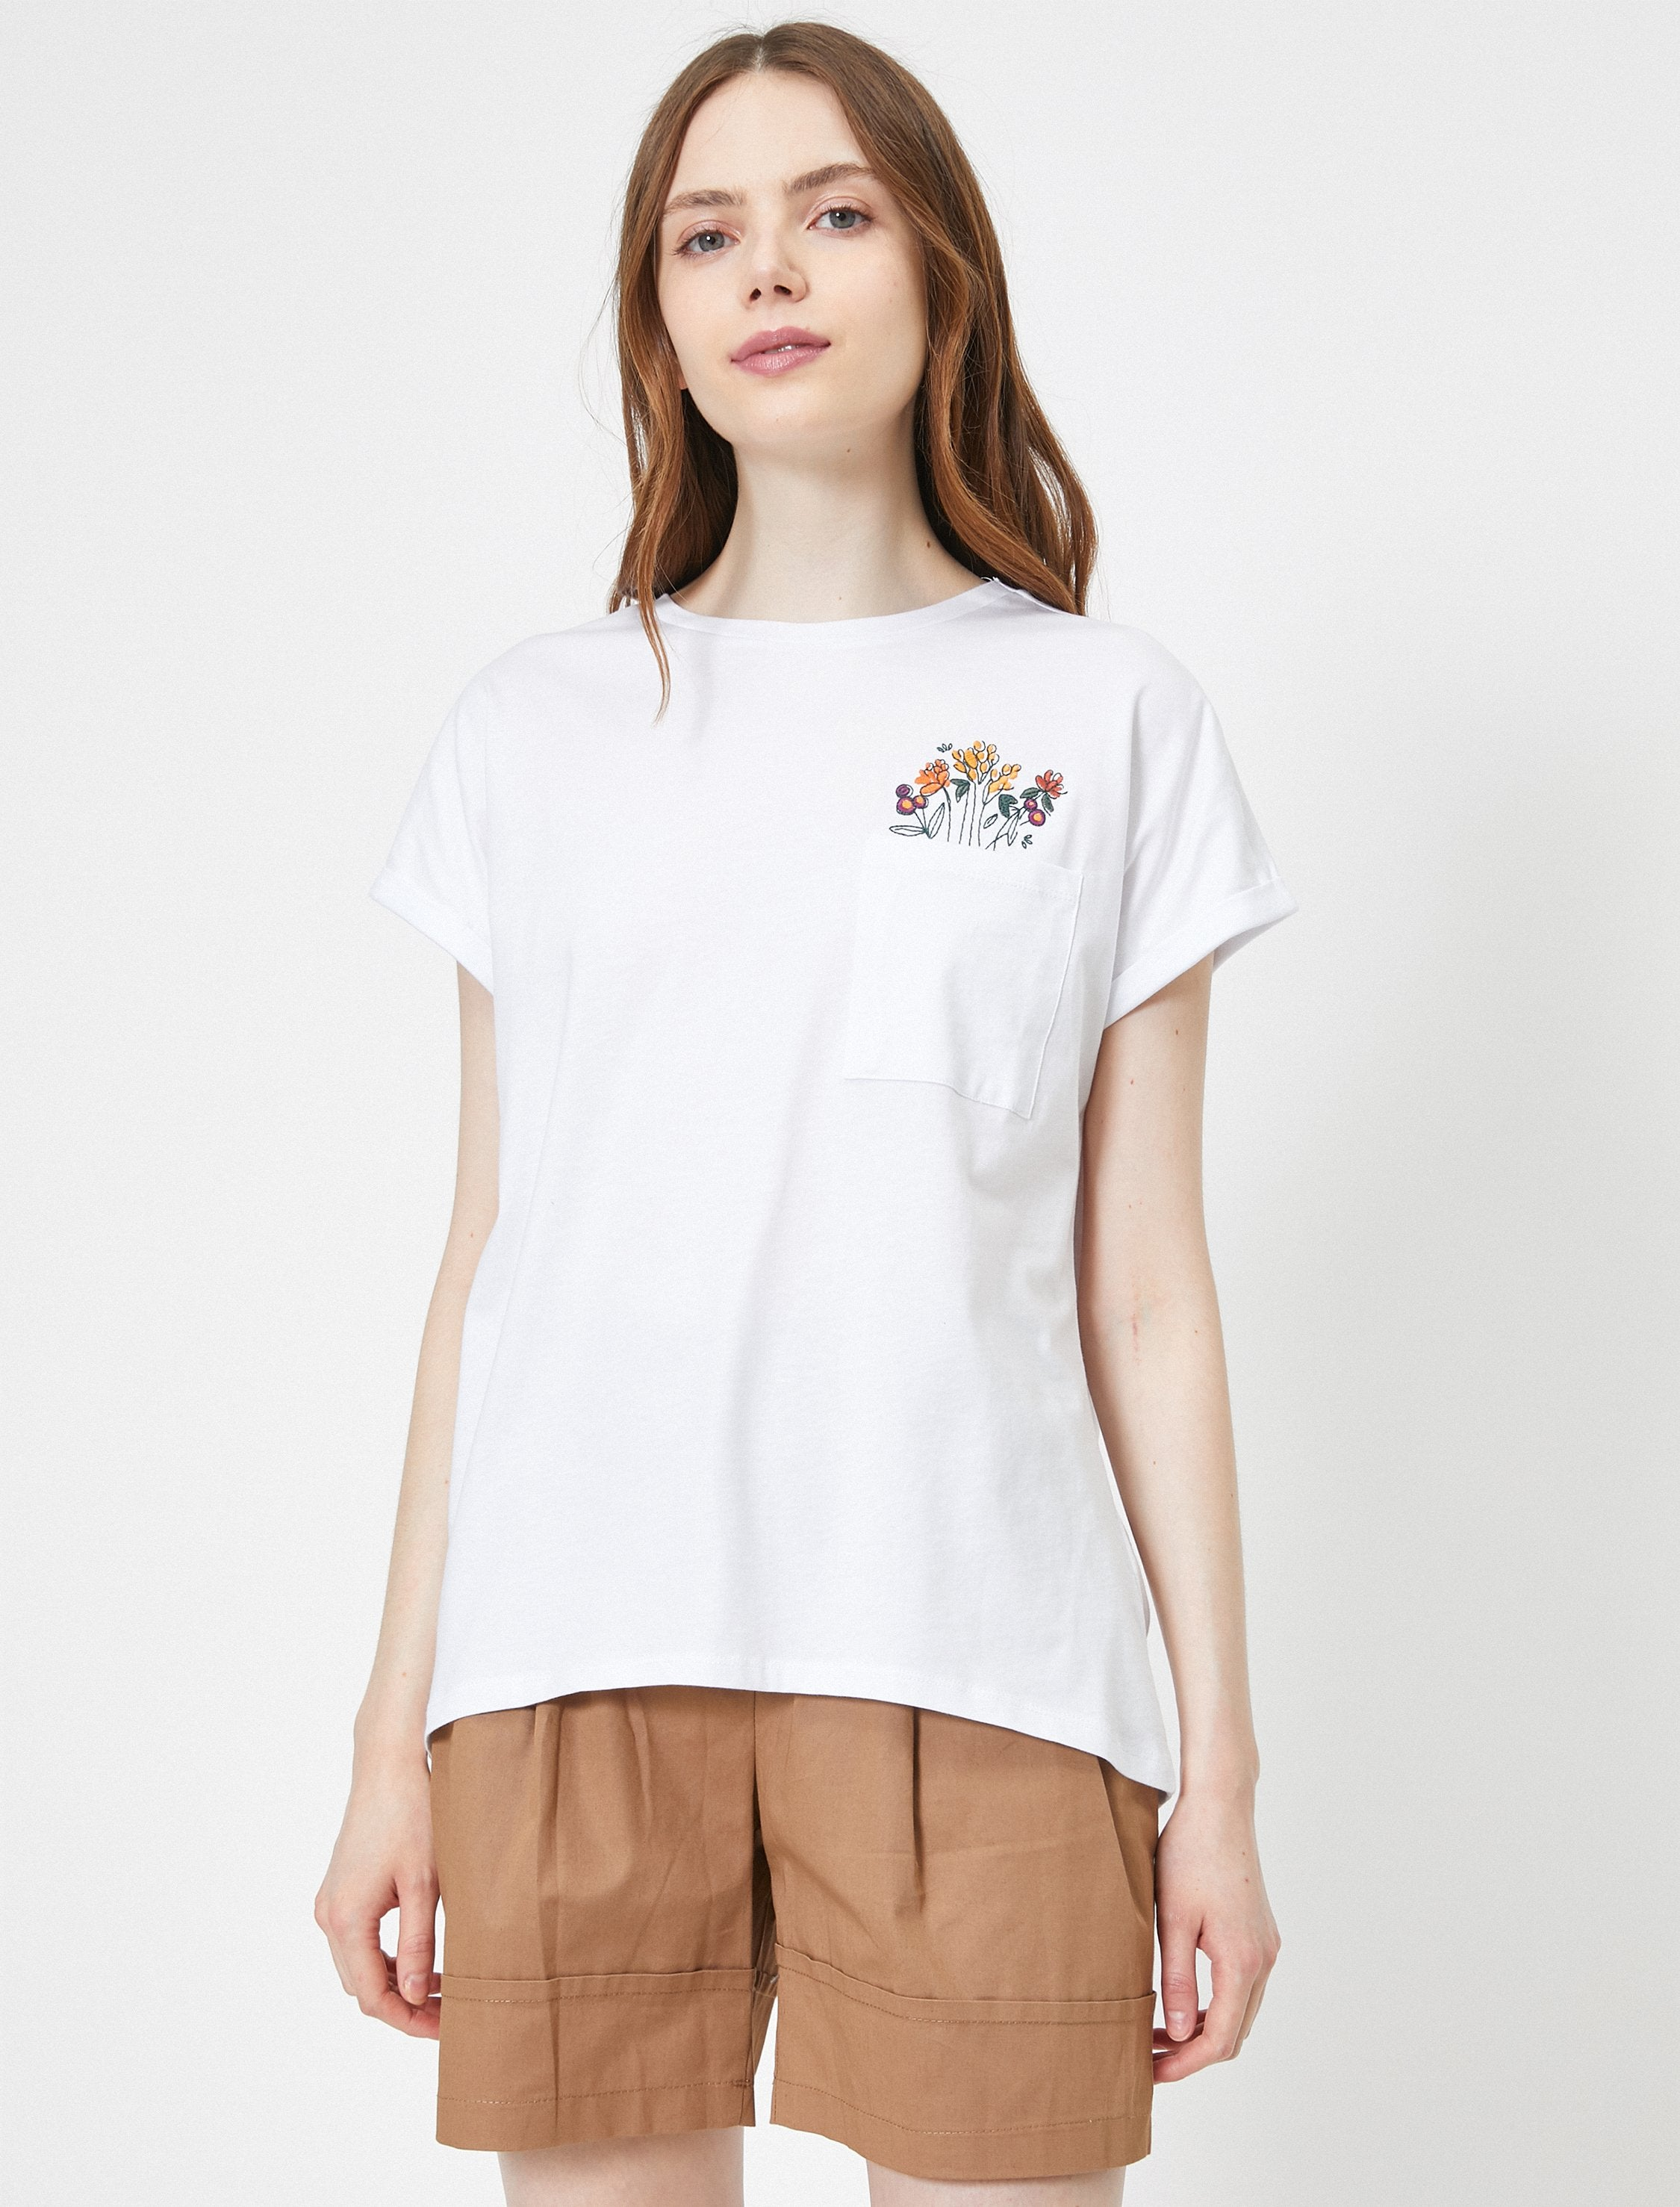 Floral Graphic Tshirt in White